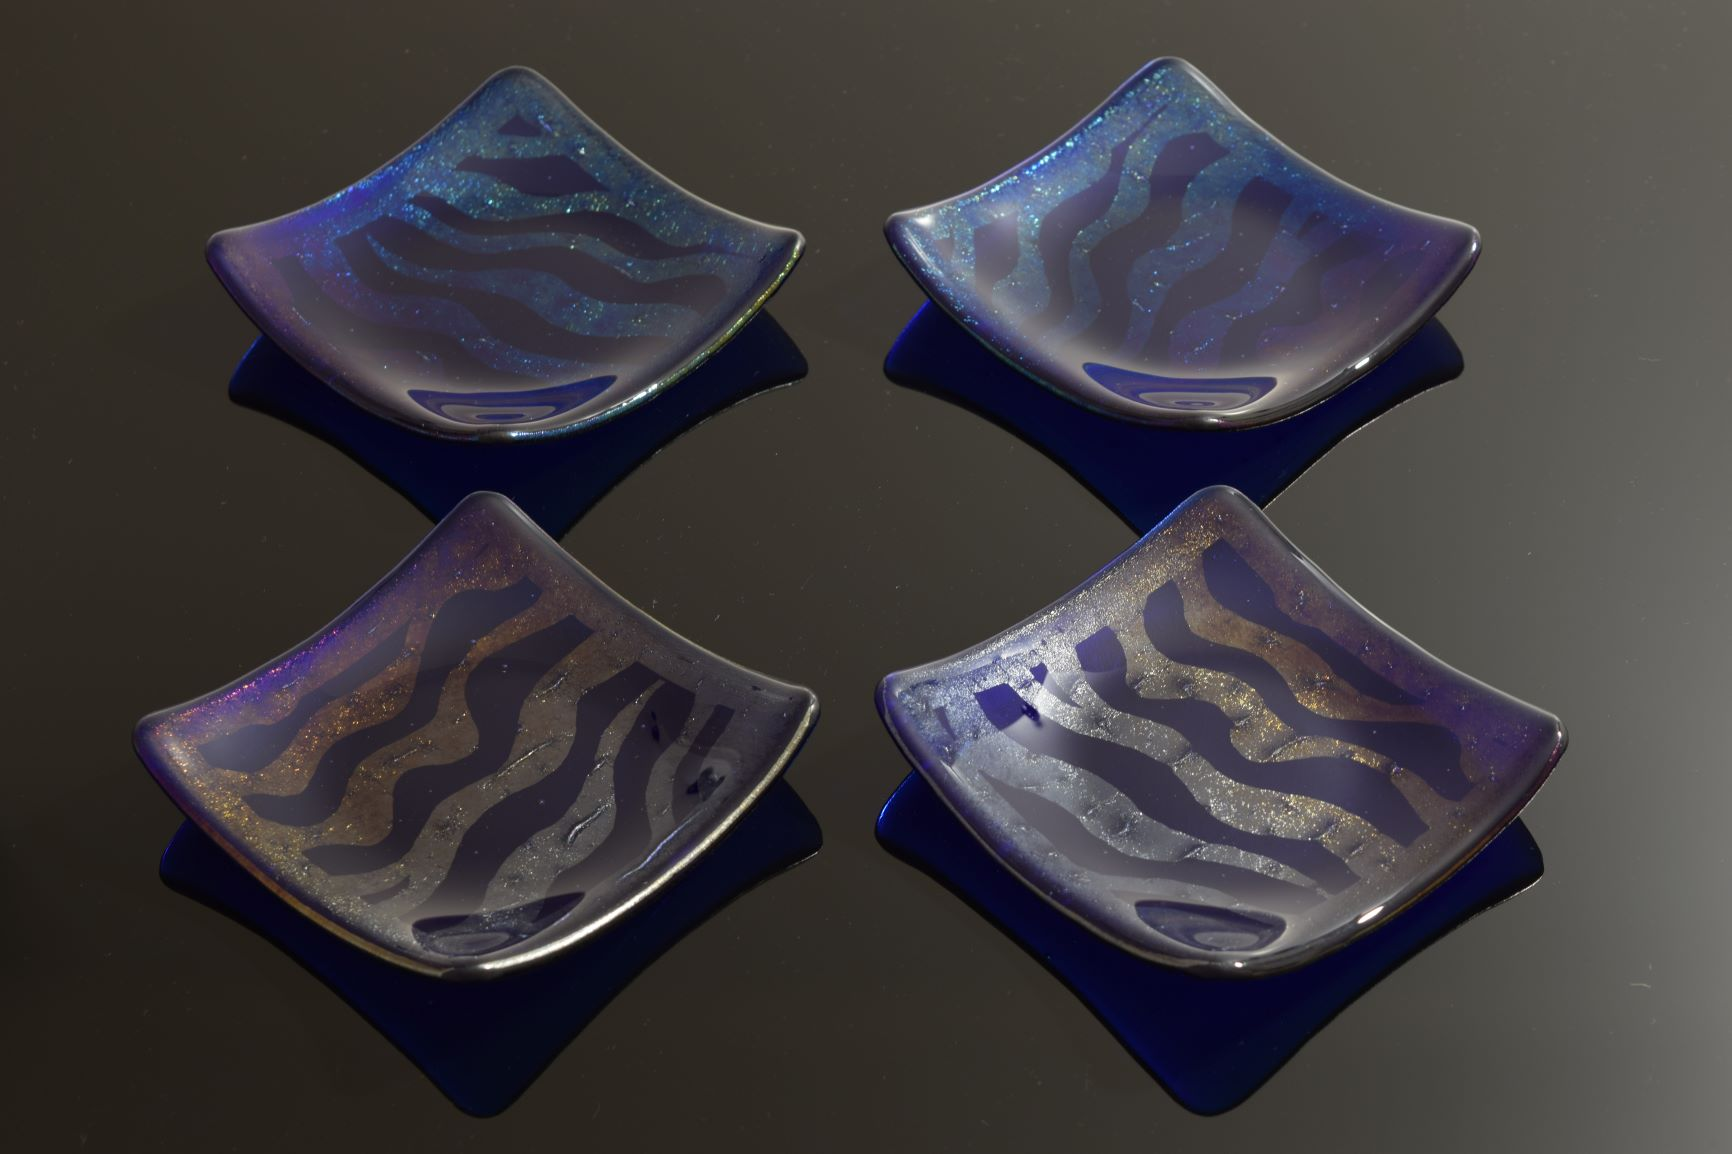 Set of 4 fused galss Strata dishes in royal blue transparent glass. Photo © M.Wilson